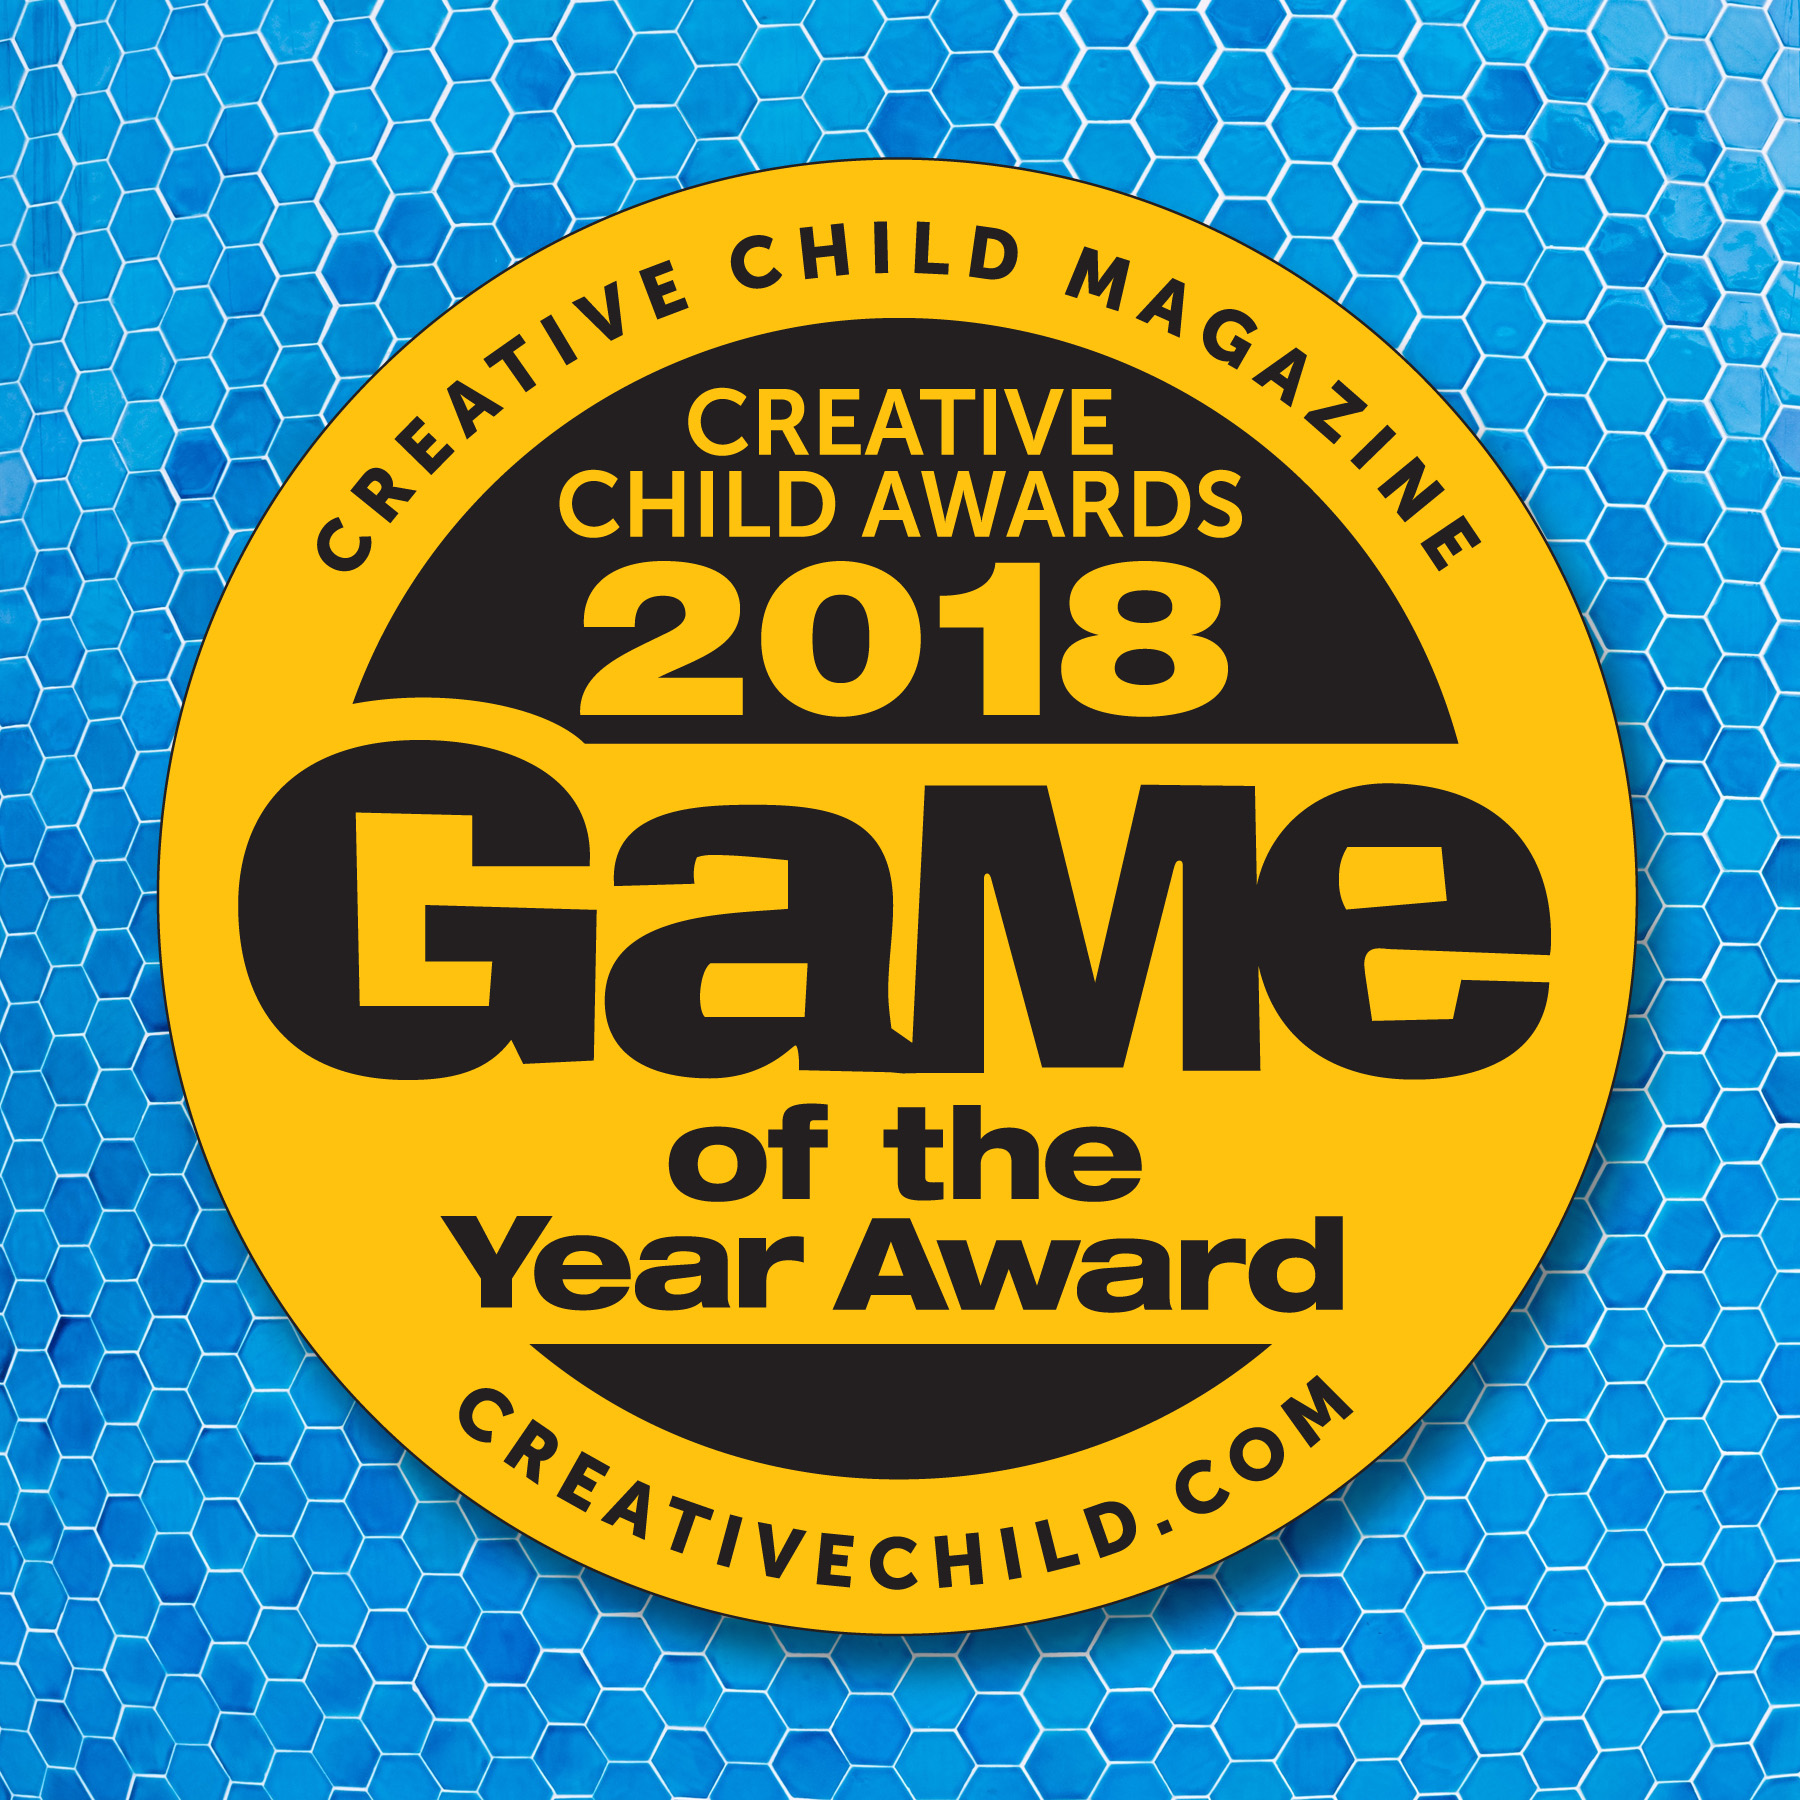 CREATIVE CHILD AWARDS GAME OF THE YEAR